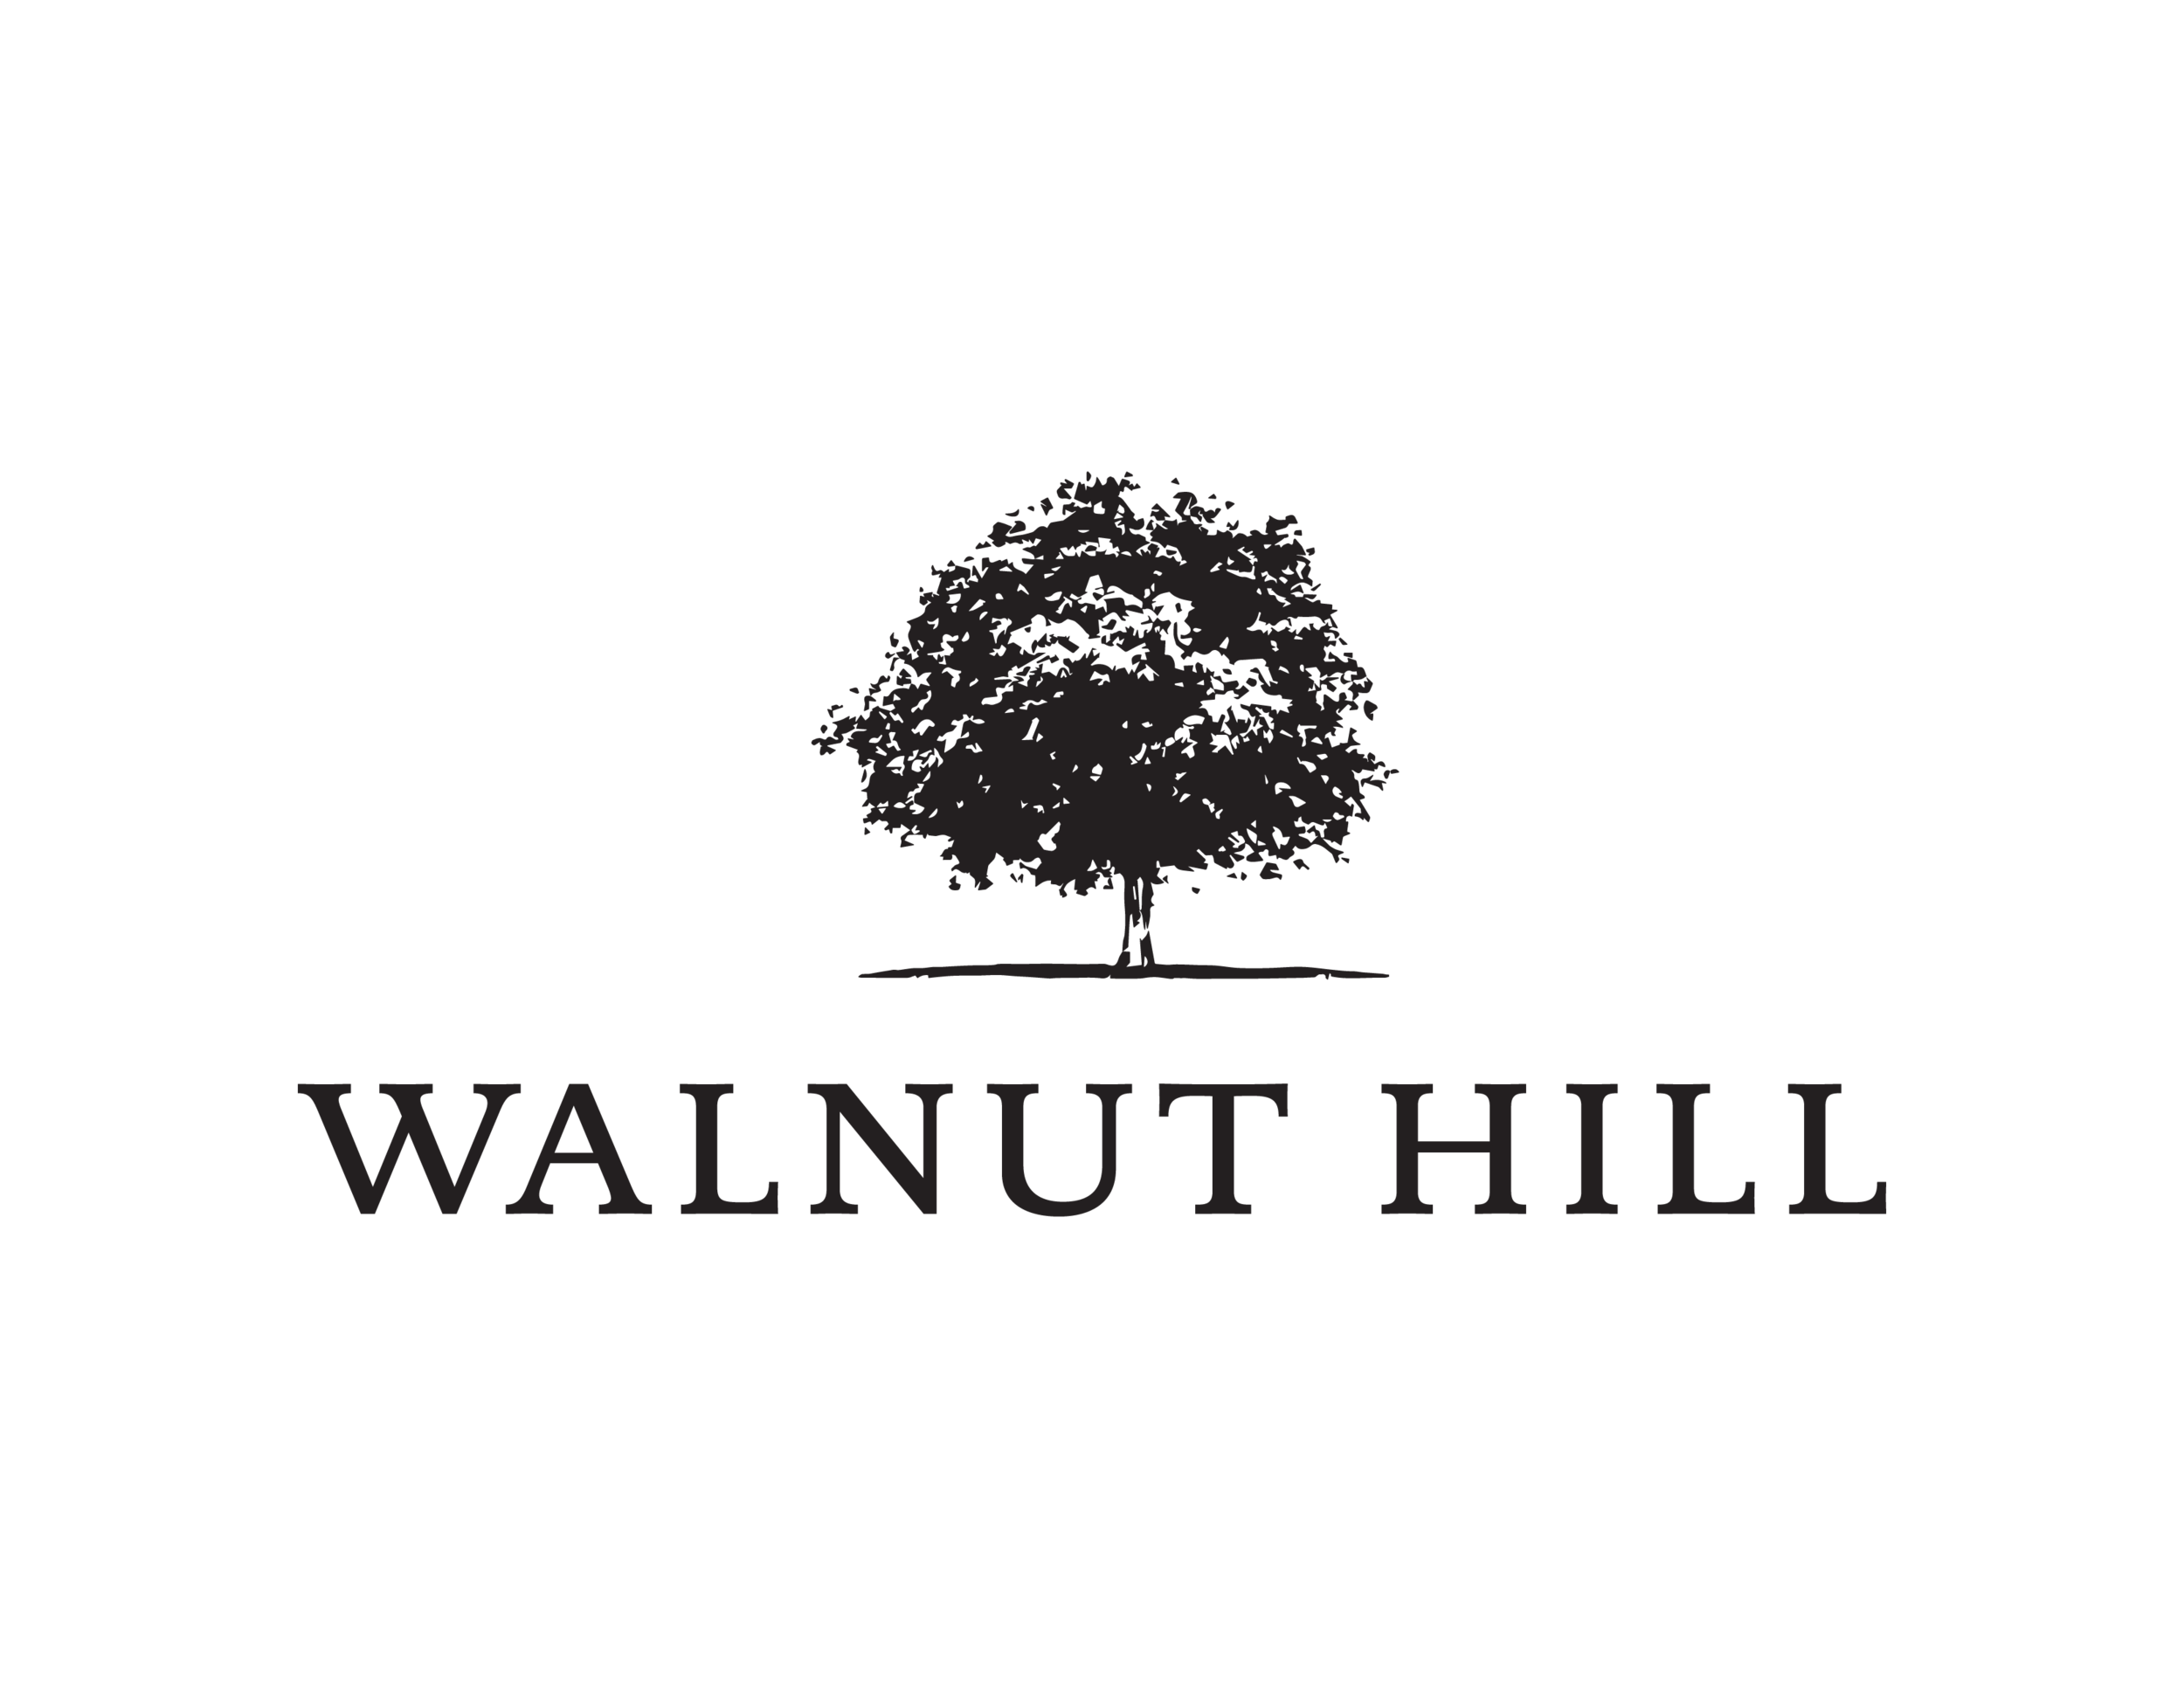 WalnutHill-01 (1).png